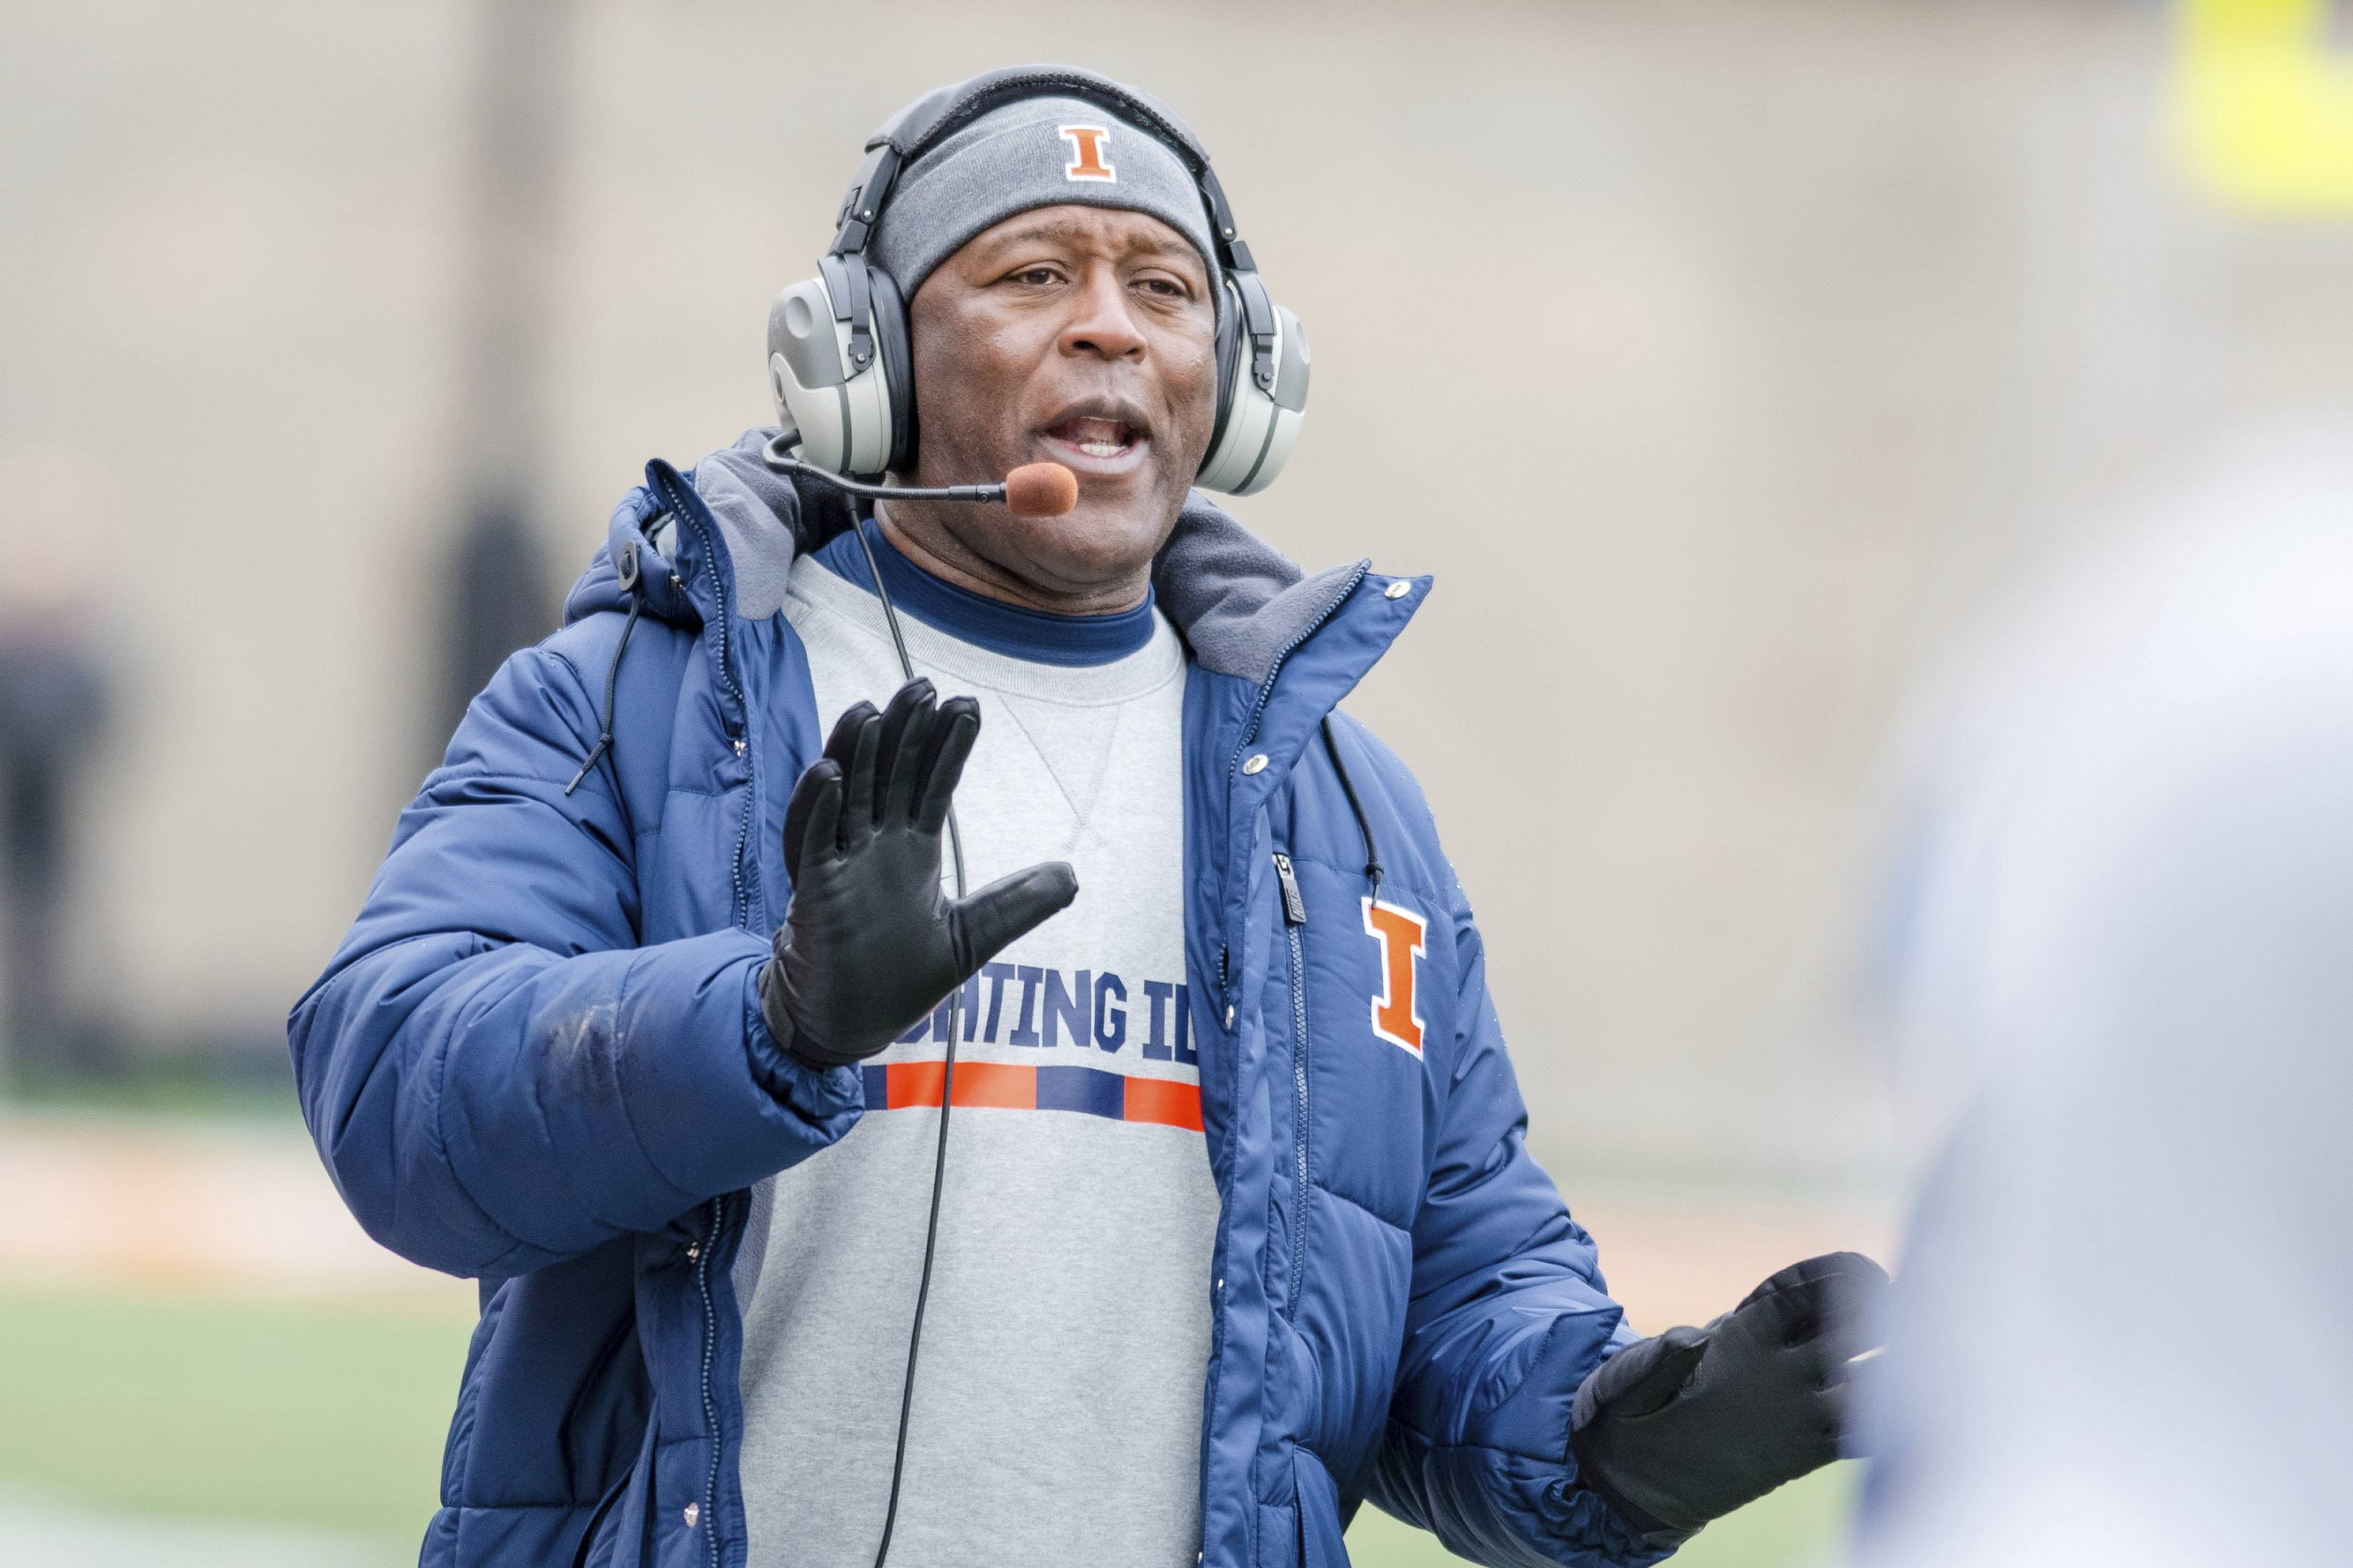 Associated Press Illinois head coach Lovie Smith shouts from the sideline during the second quarter of an NCAA college football game against Wisconsin on Saturday. Smith is eager to find a win as the end of the season nears. The Illini have played better of late, losing 24-10 at home to No. 4 Wisconsin on Saturday a week after losing by a touchdown to Minnesota.